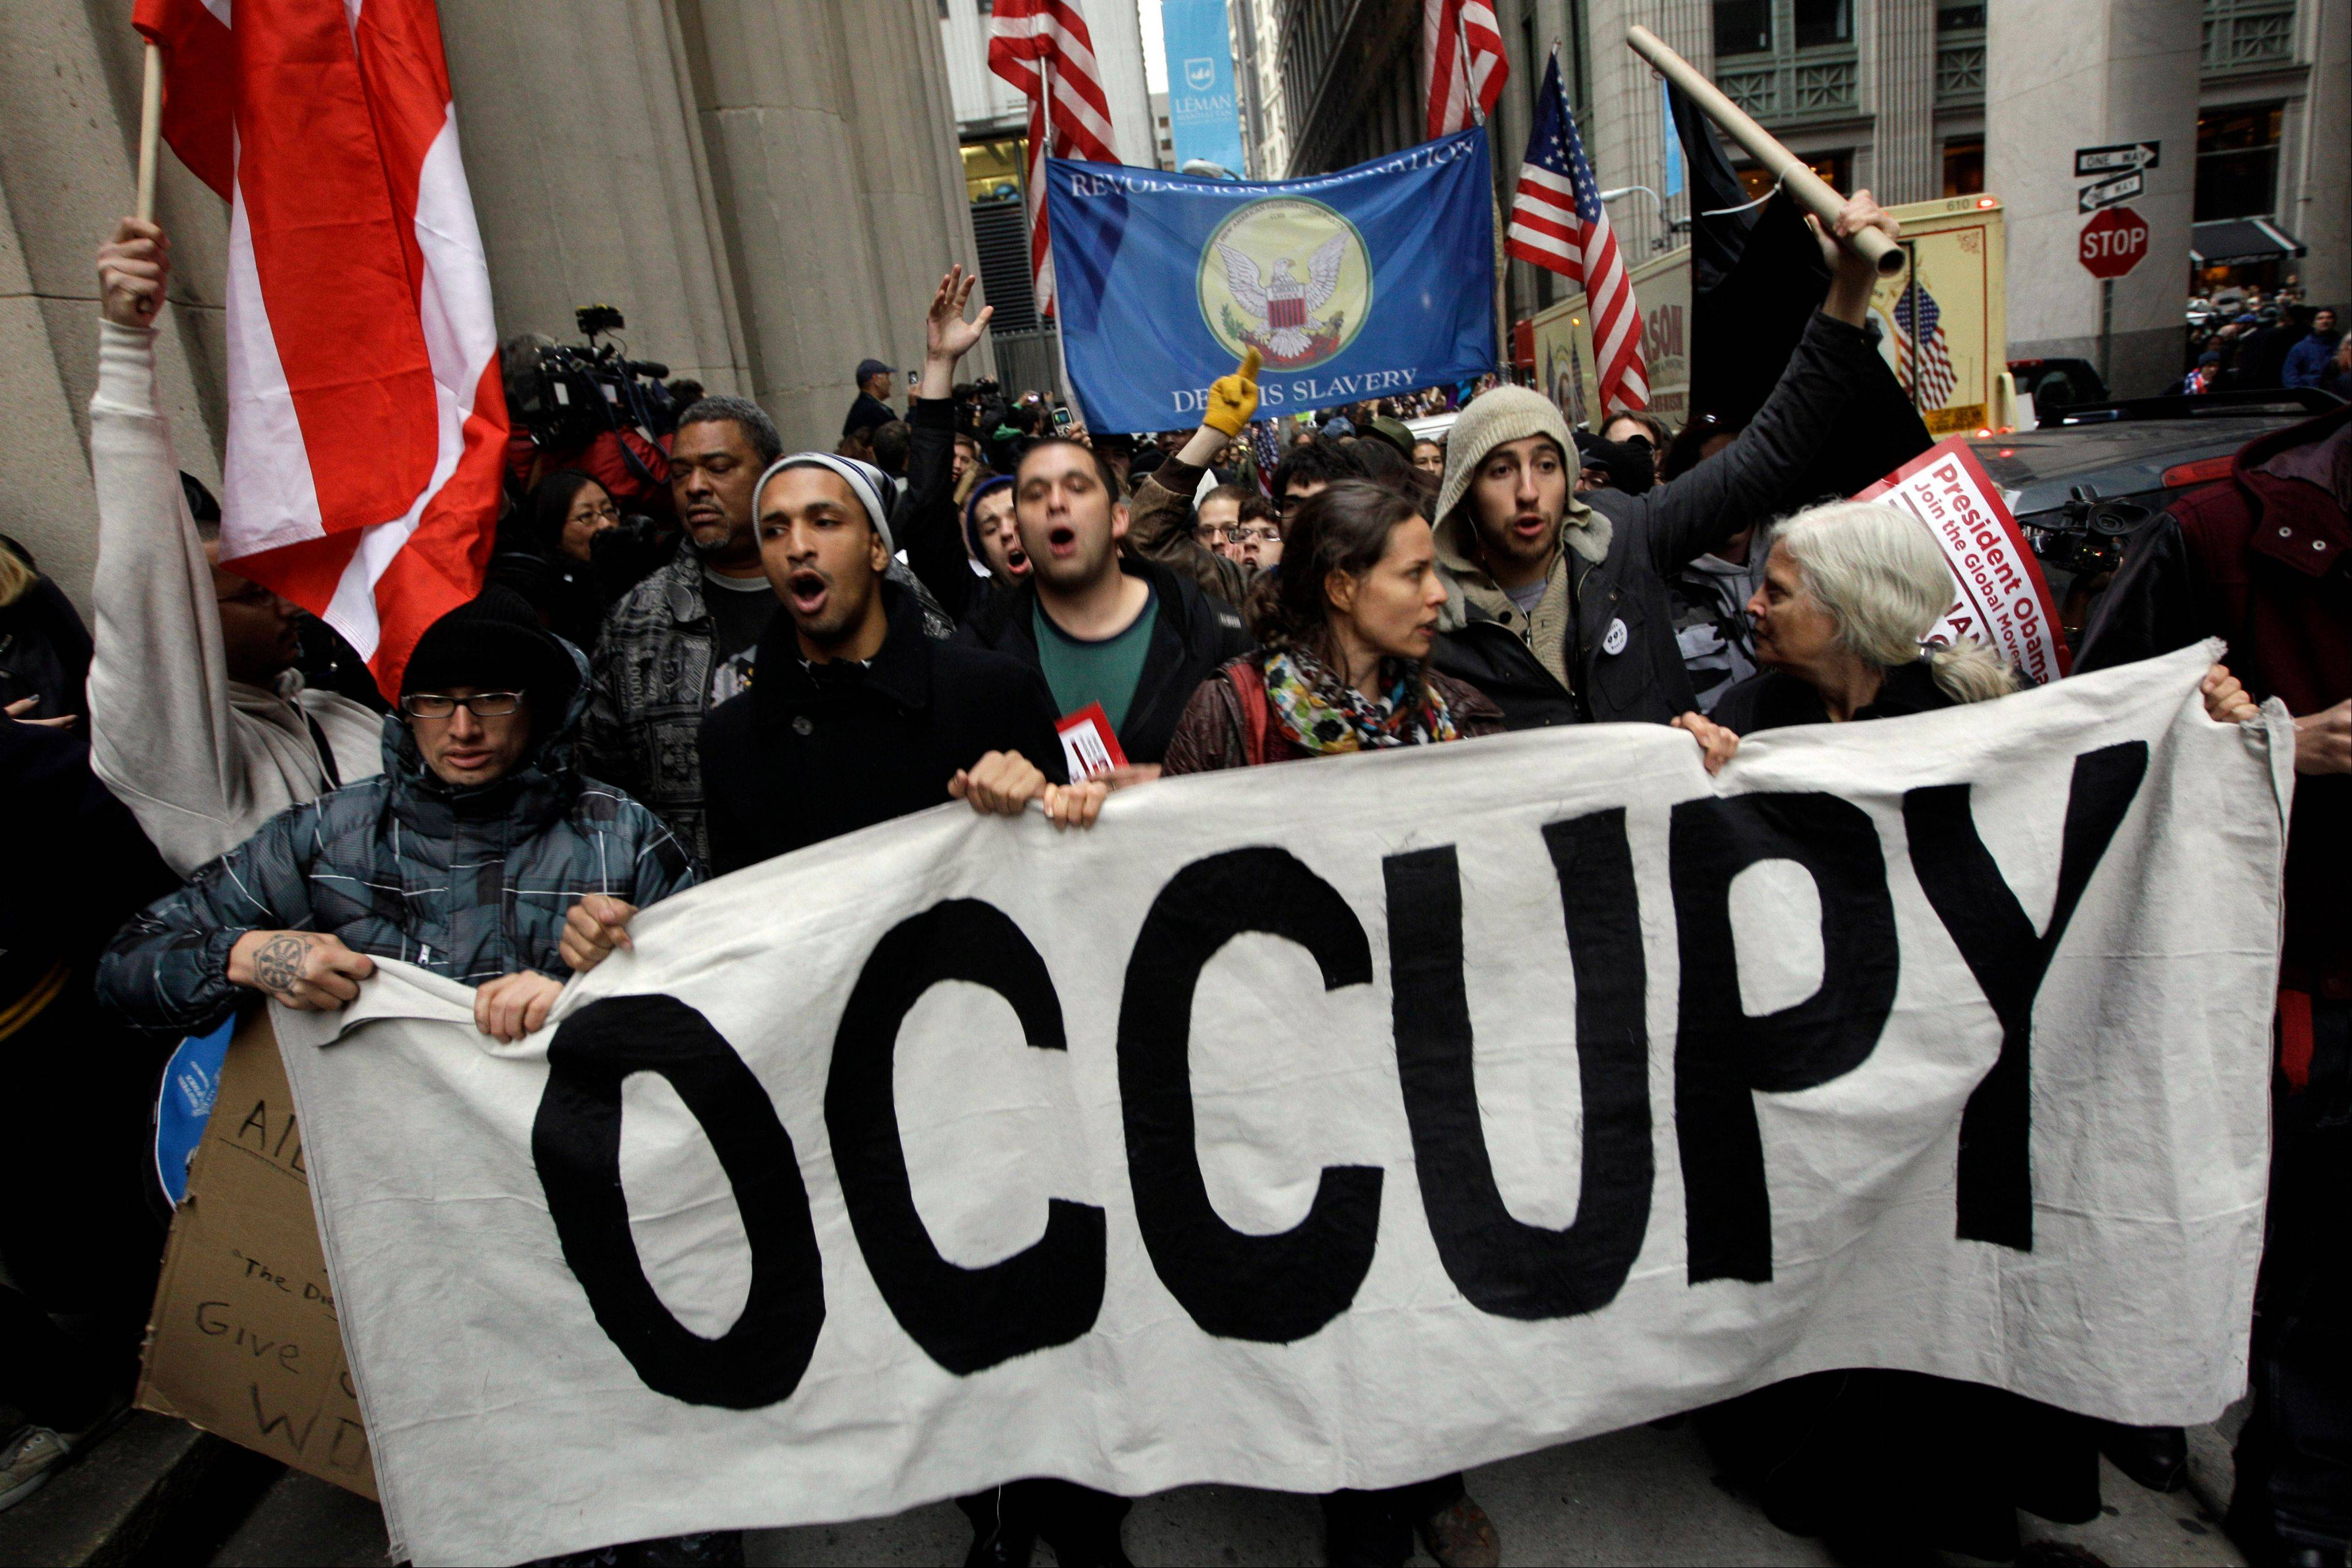 Demonstrators affiliated with the Occupy Wall Street movement march through the streets of the financial district Nov. 17, 2011, in New York.